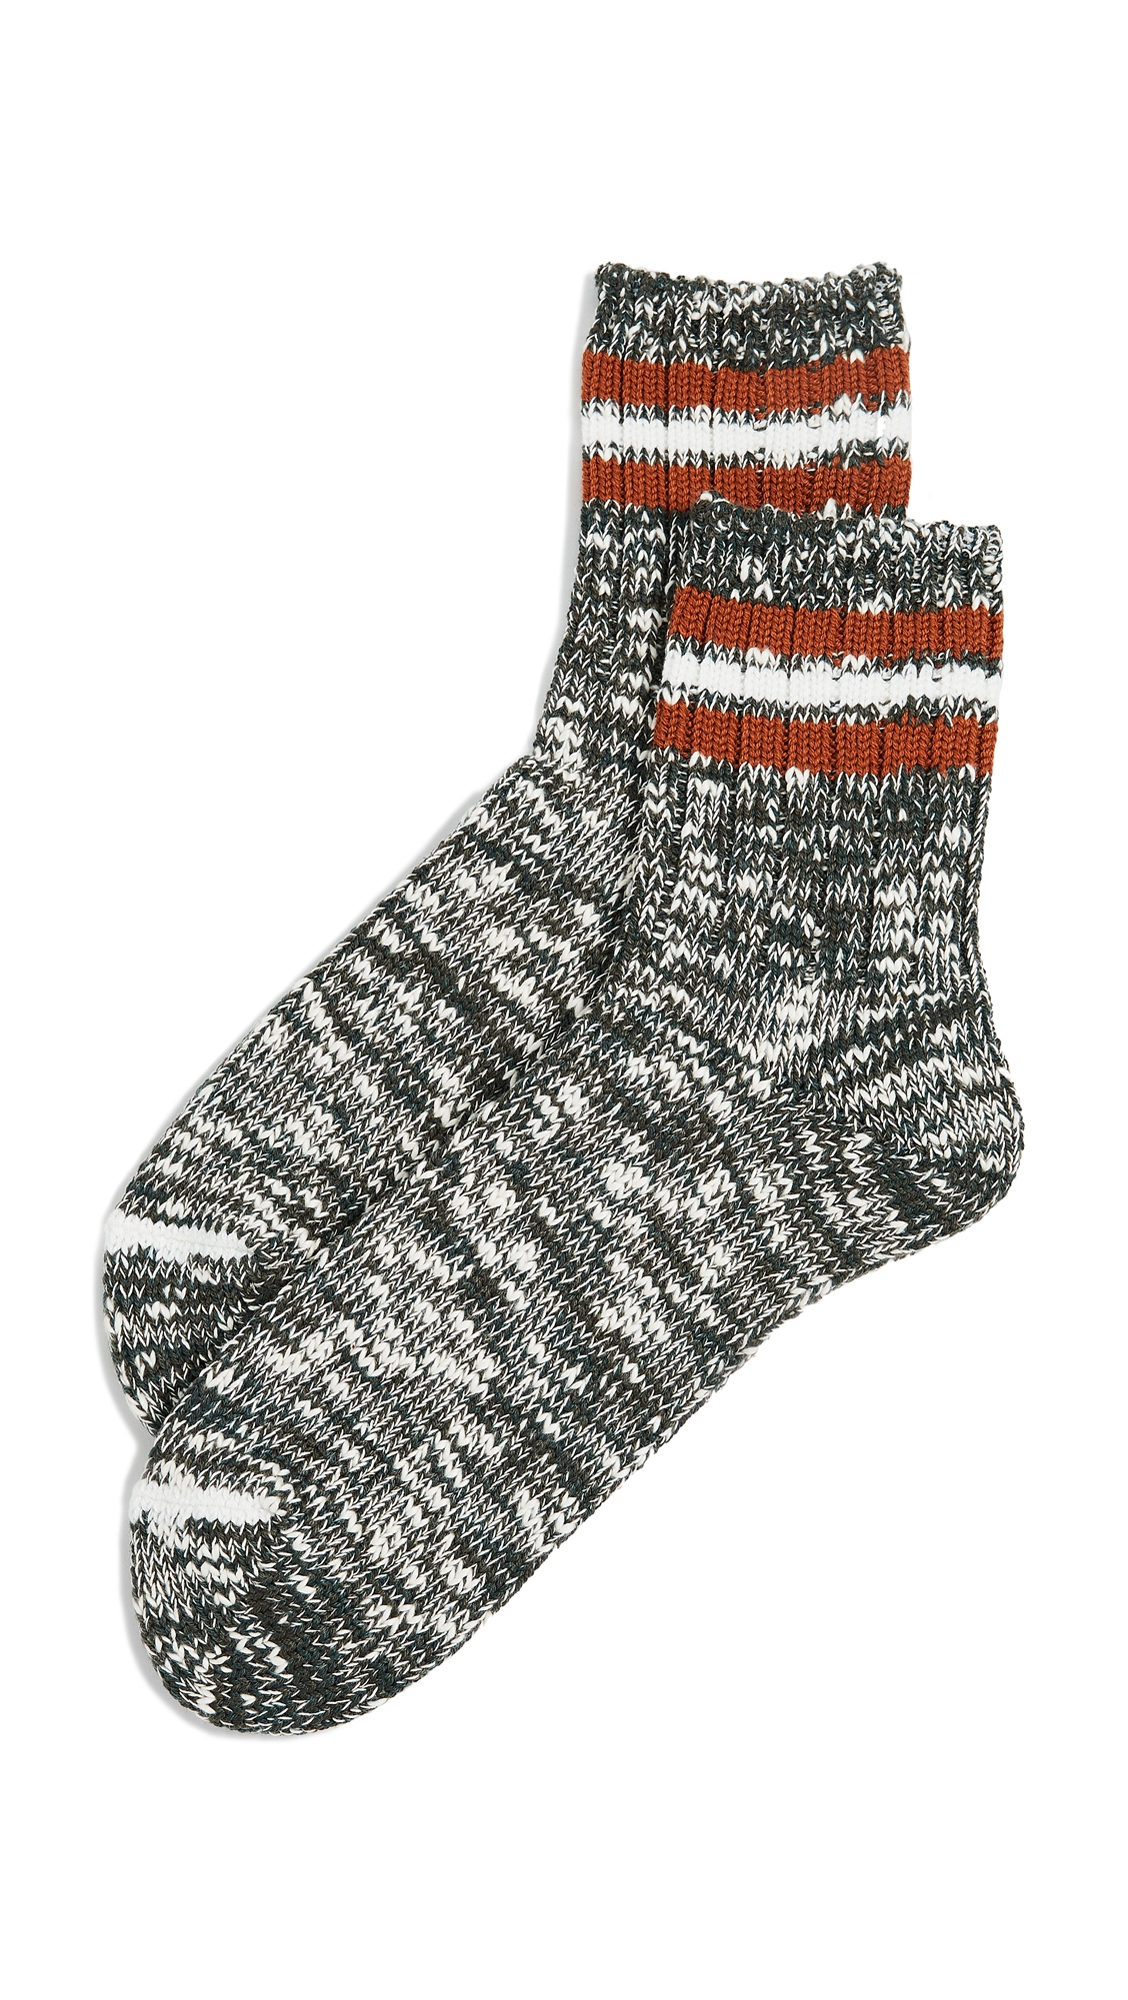 ANONYMOUS ISM 3-LINE SLUB QUARTER SOCKS